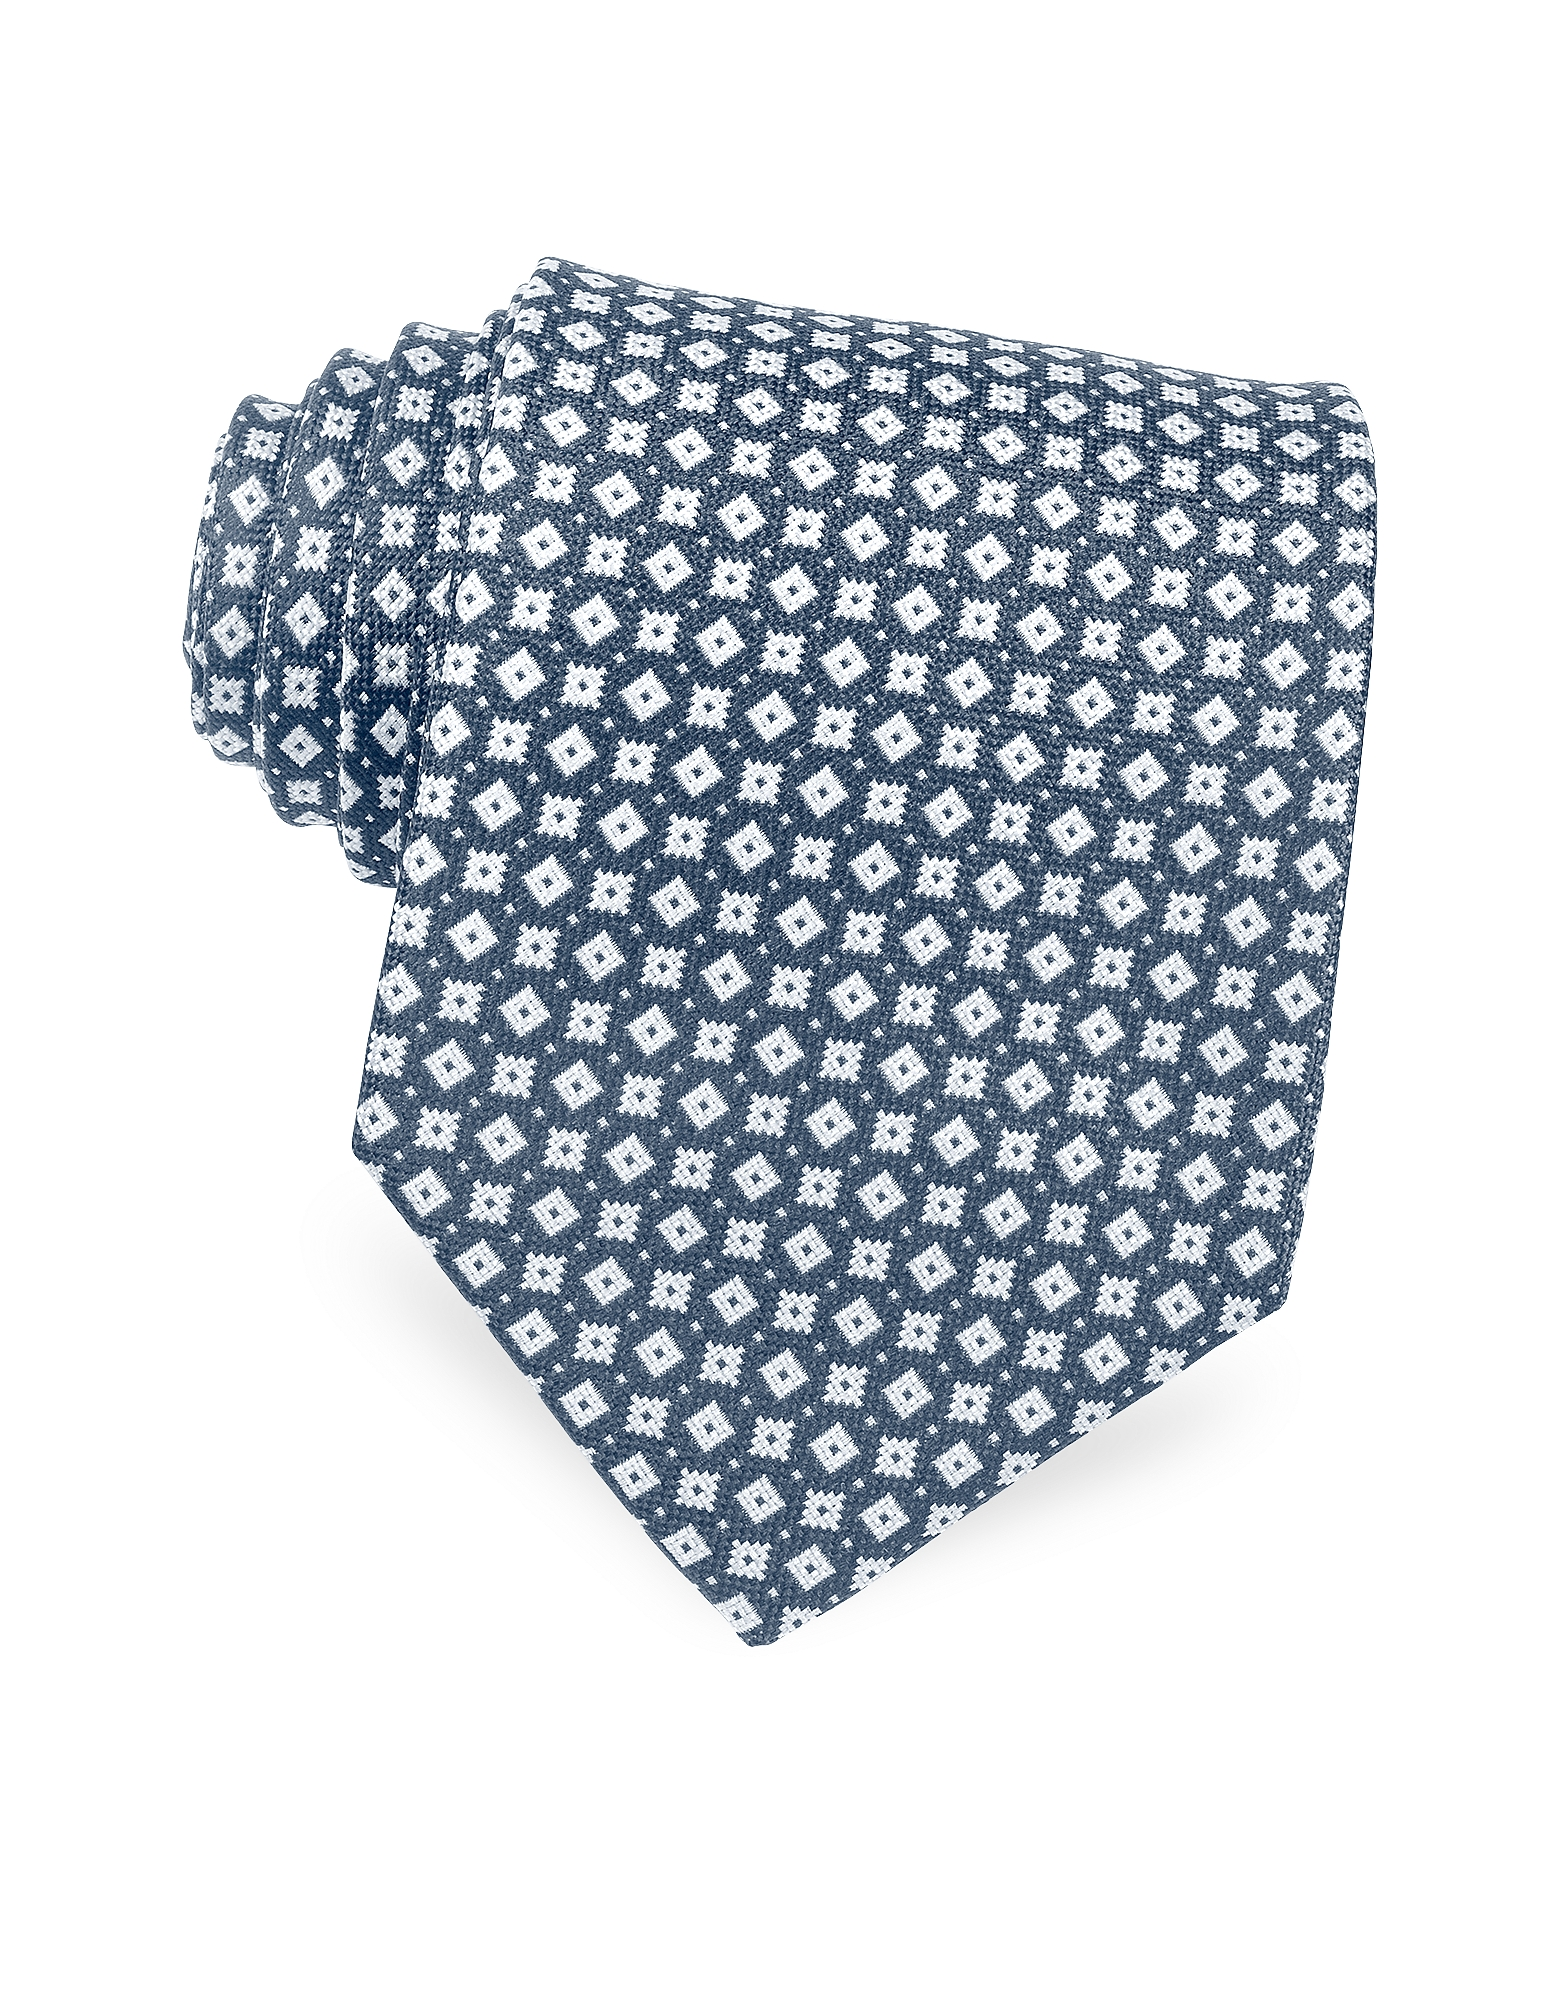 Blue and White Micro Geometric Patterned Woven Silk Tie от Forzieri.com INT